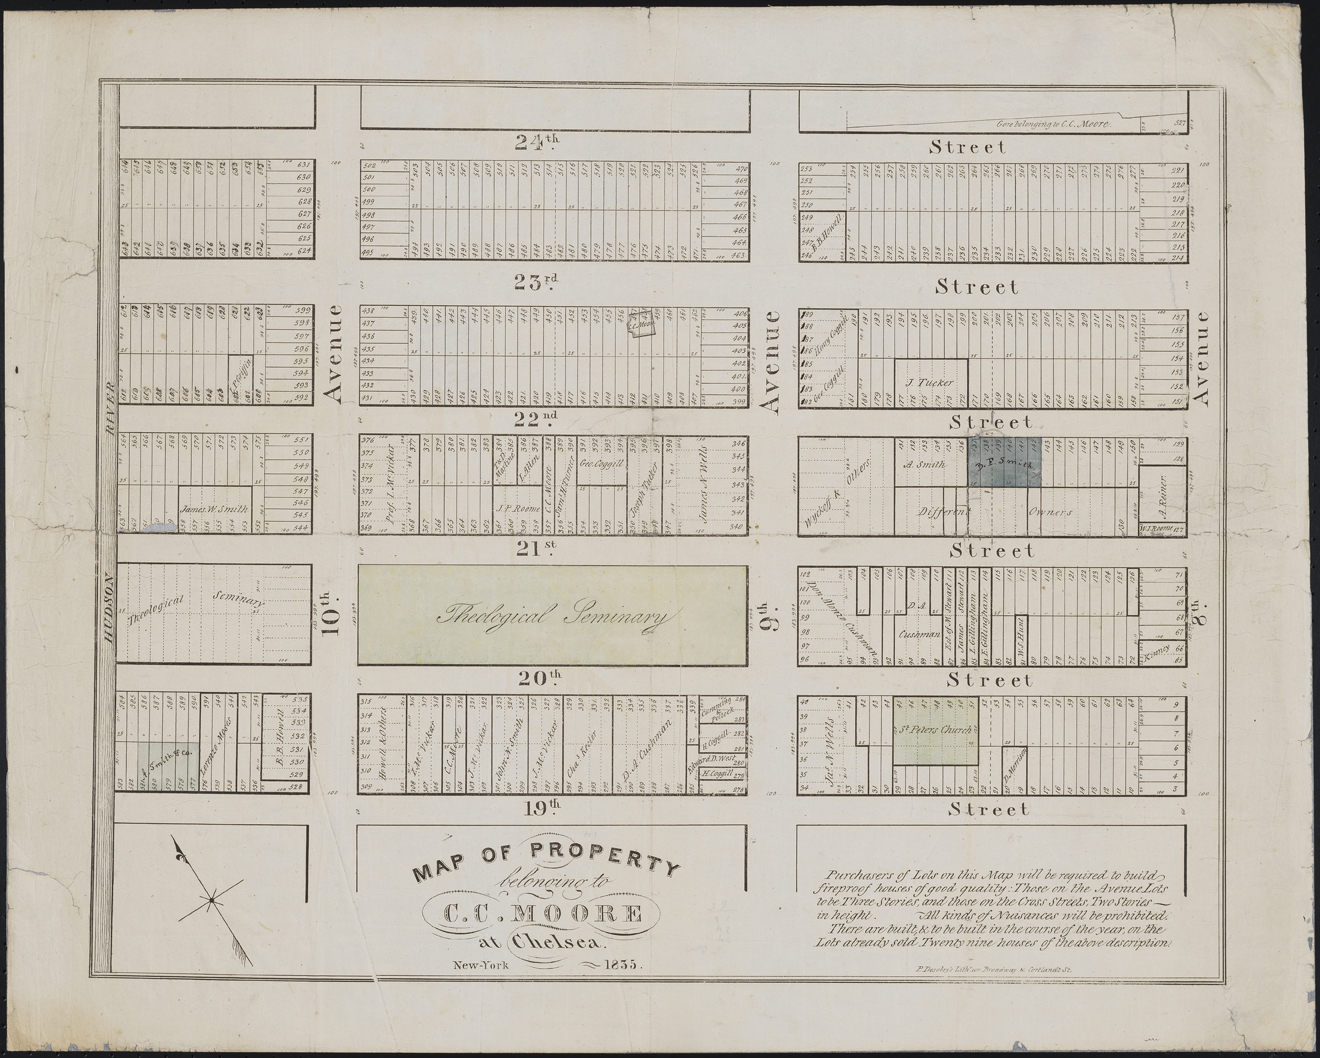 Prosper Desobry. Map of Property belonging to C.C. Moore at Chelsea. 1835. Museum of the City of New York. 47.294.2